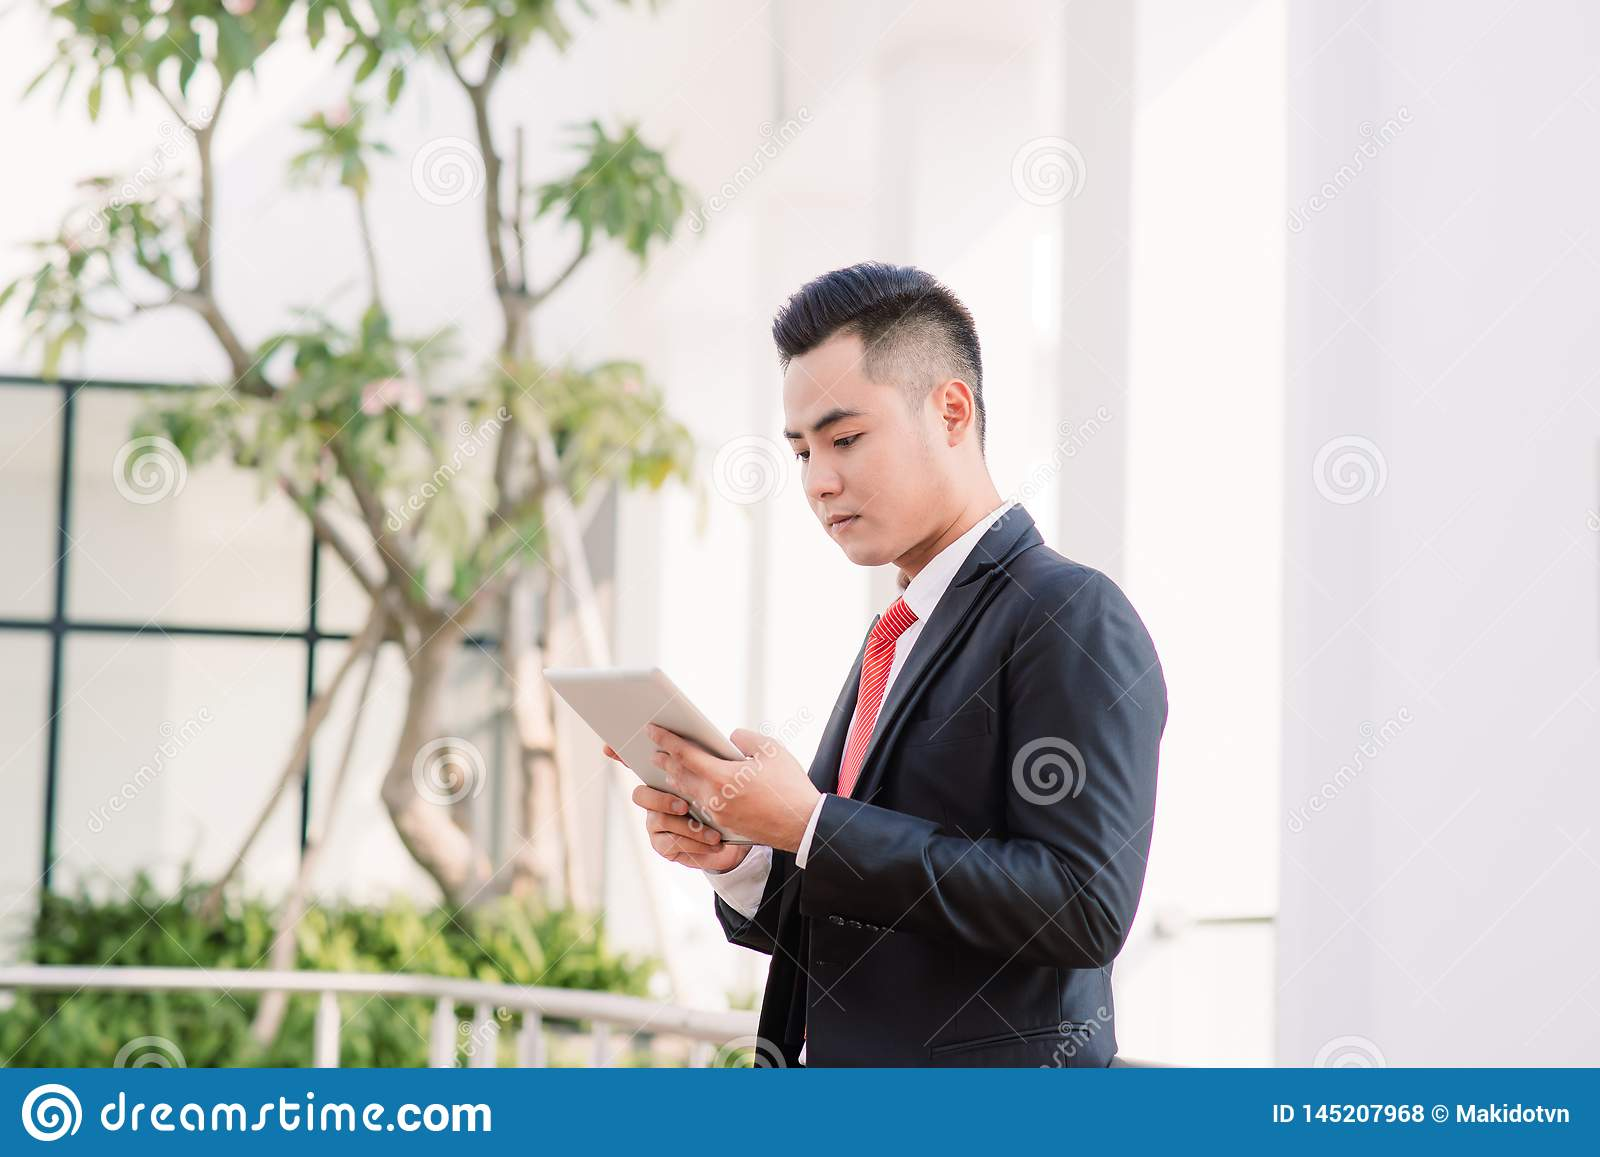 Young Asian Businessman working on tablet, Lifestyle of modern male to communicate, message or use technology in business, Always